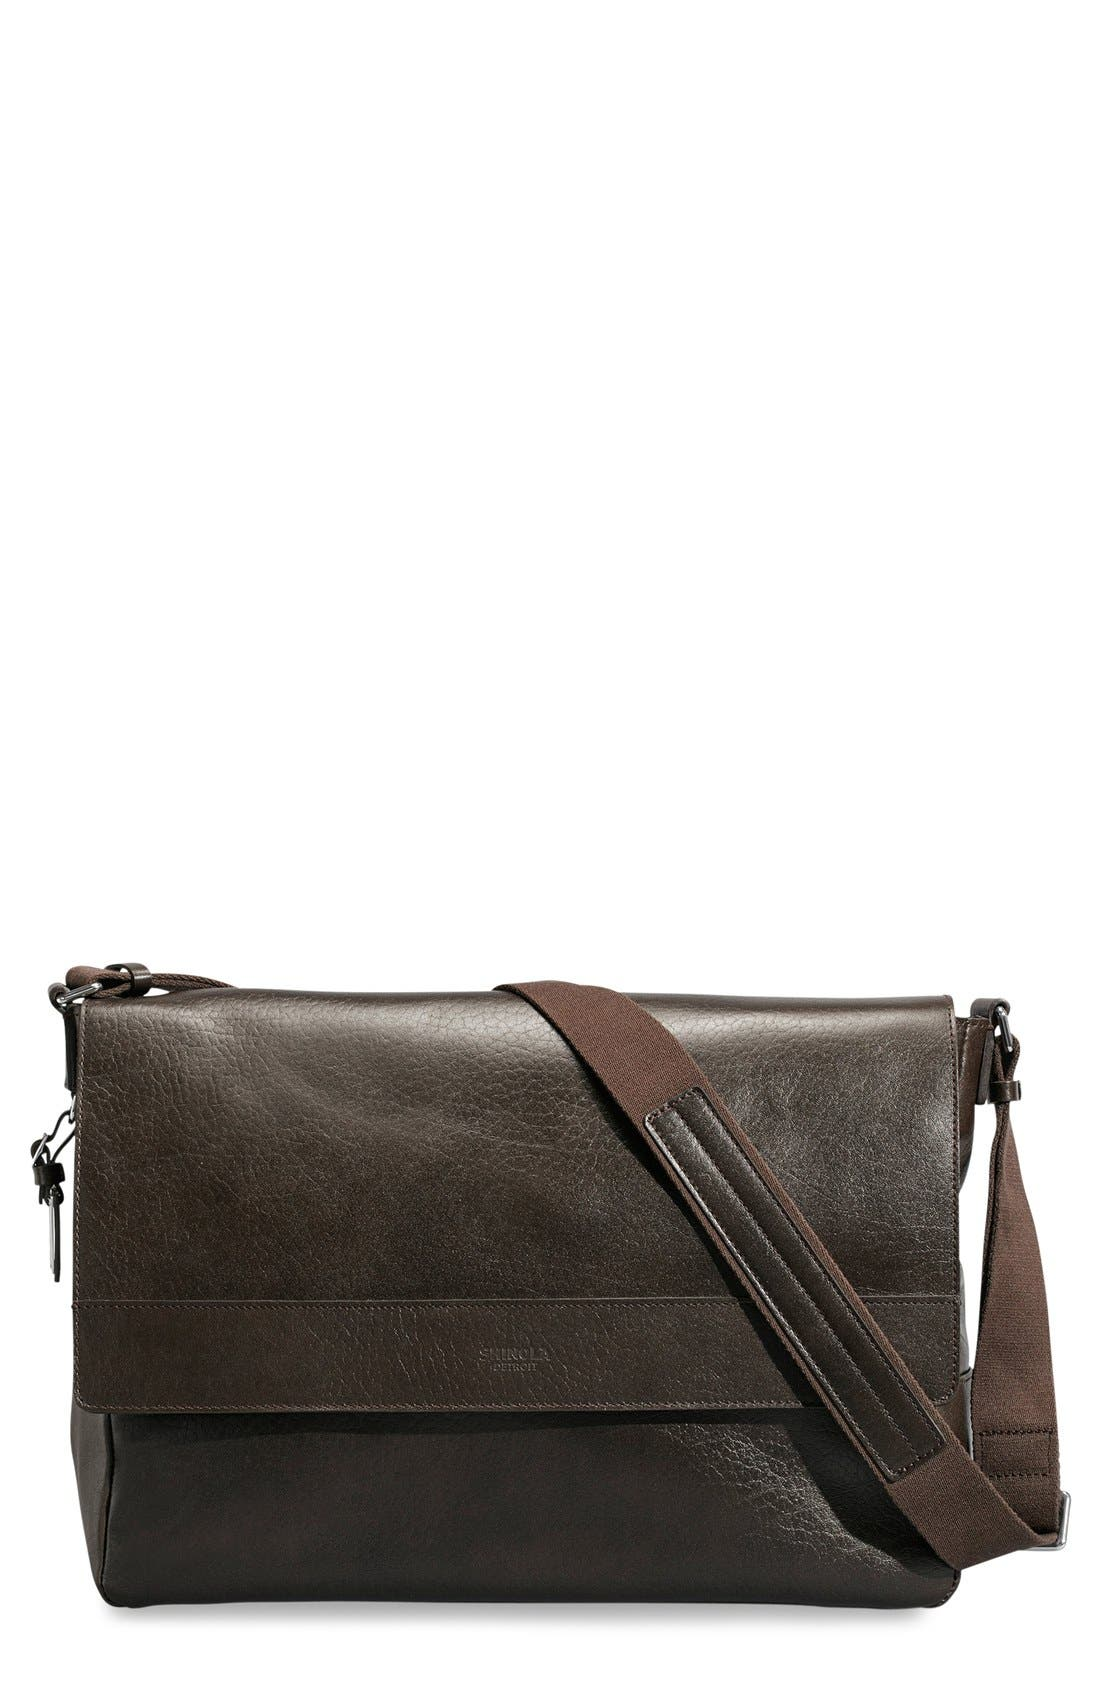 Main Image - Shinola East/West Messenger Bag